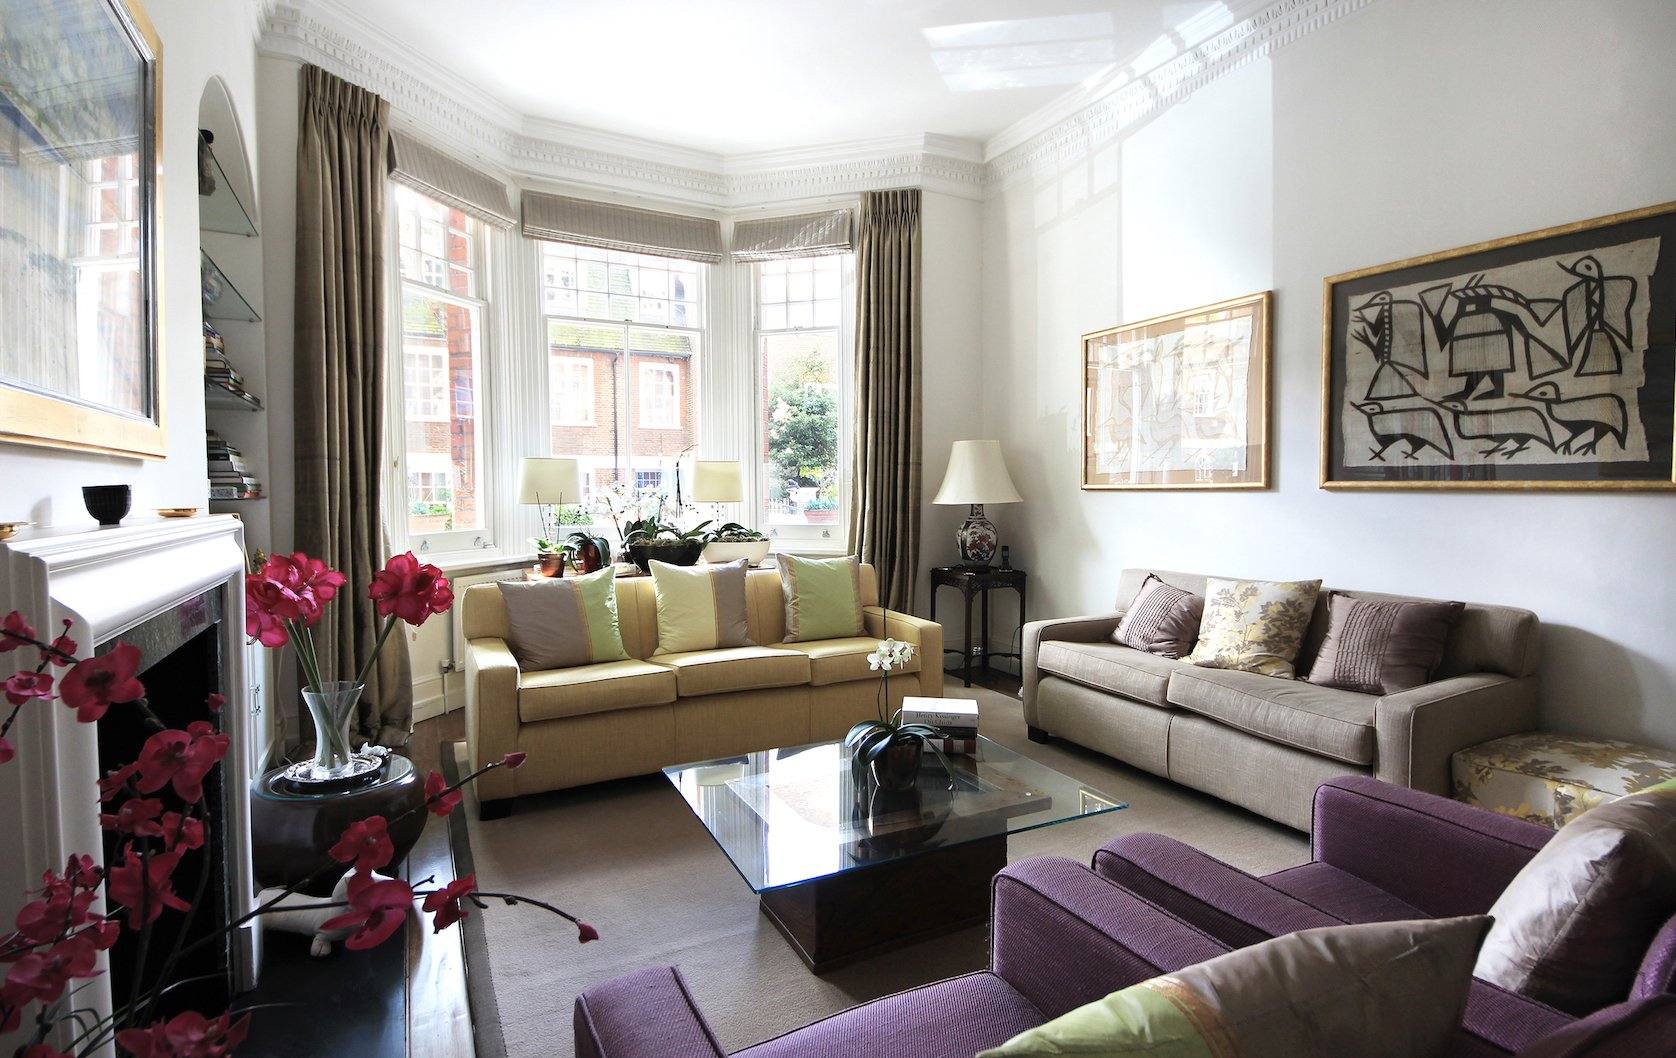 Travel with Kids: 5 Family Friendly Apartments in London ...